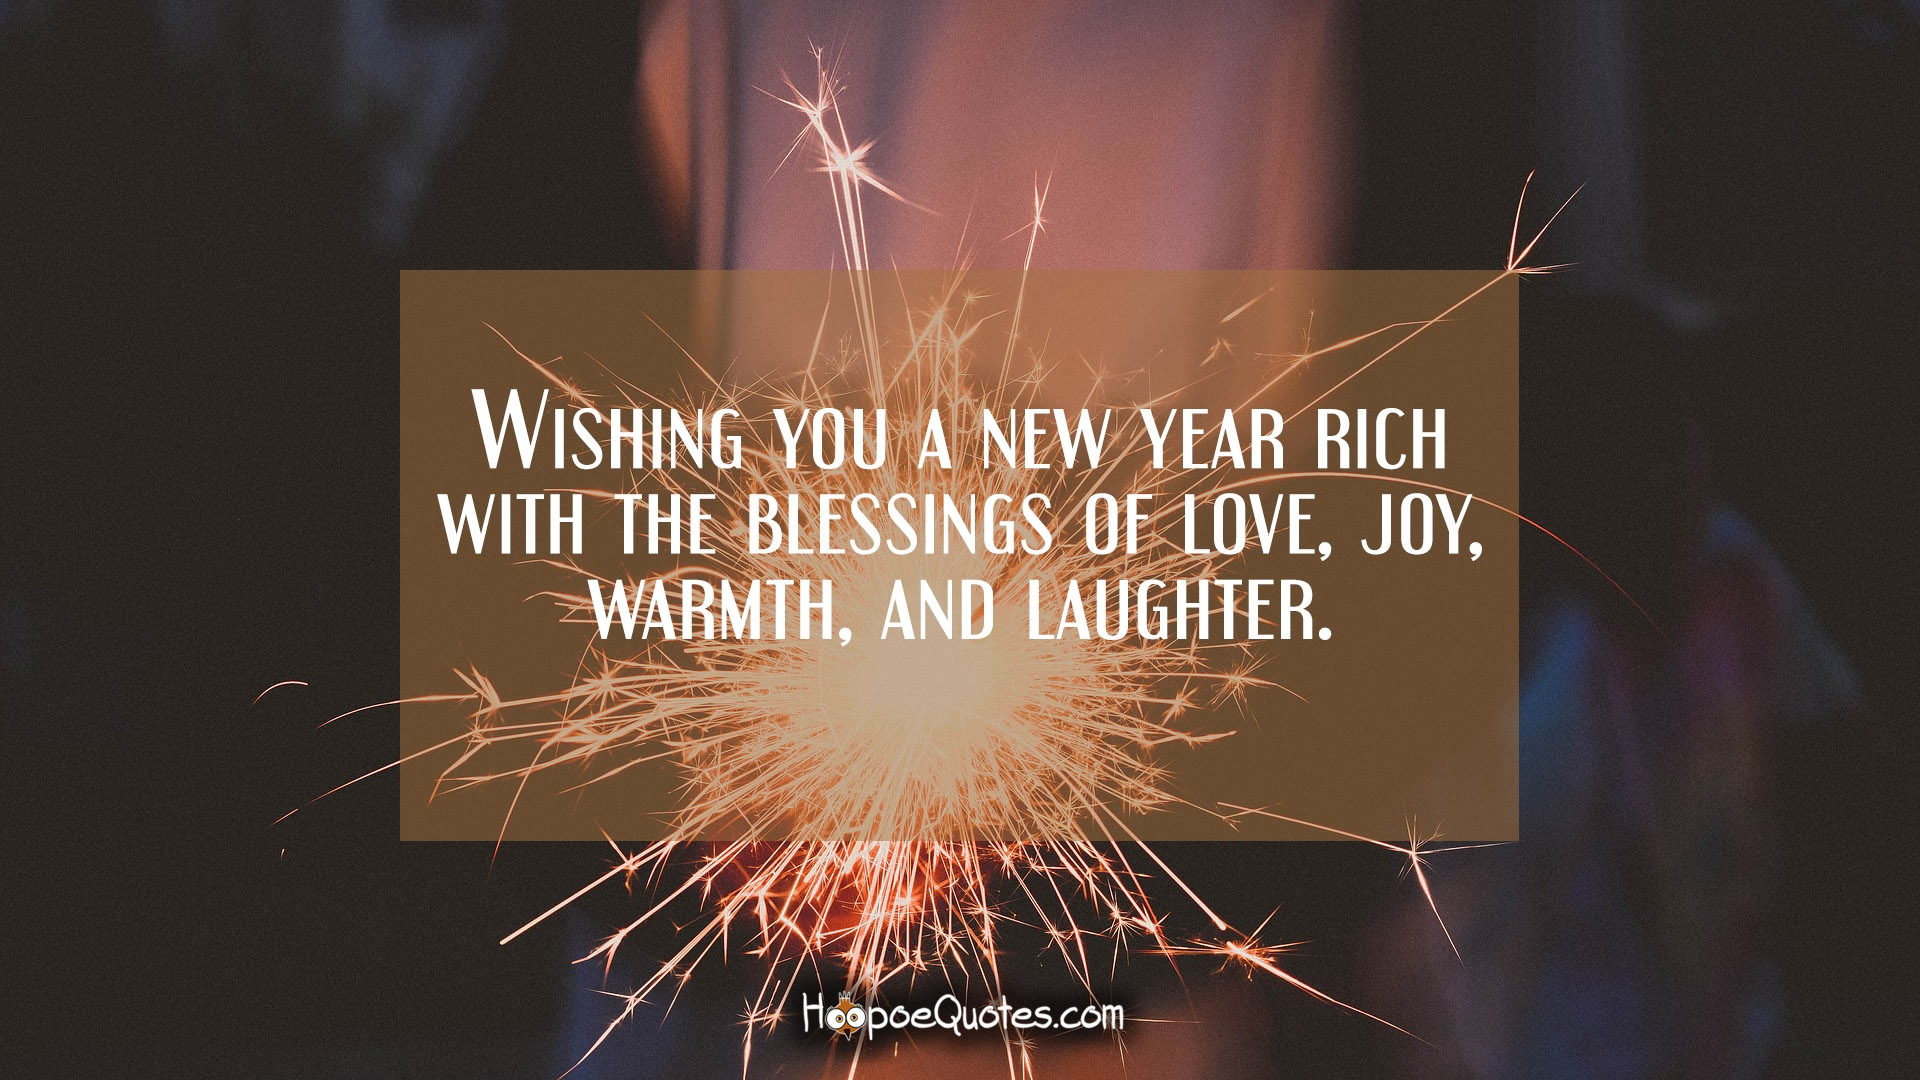 Wishing You A New Year Rich With The Blessings Of Love Joy Warmth